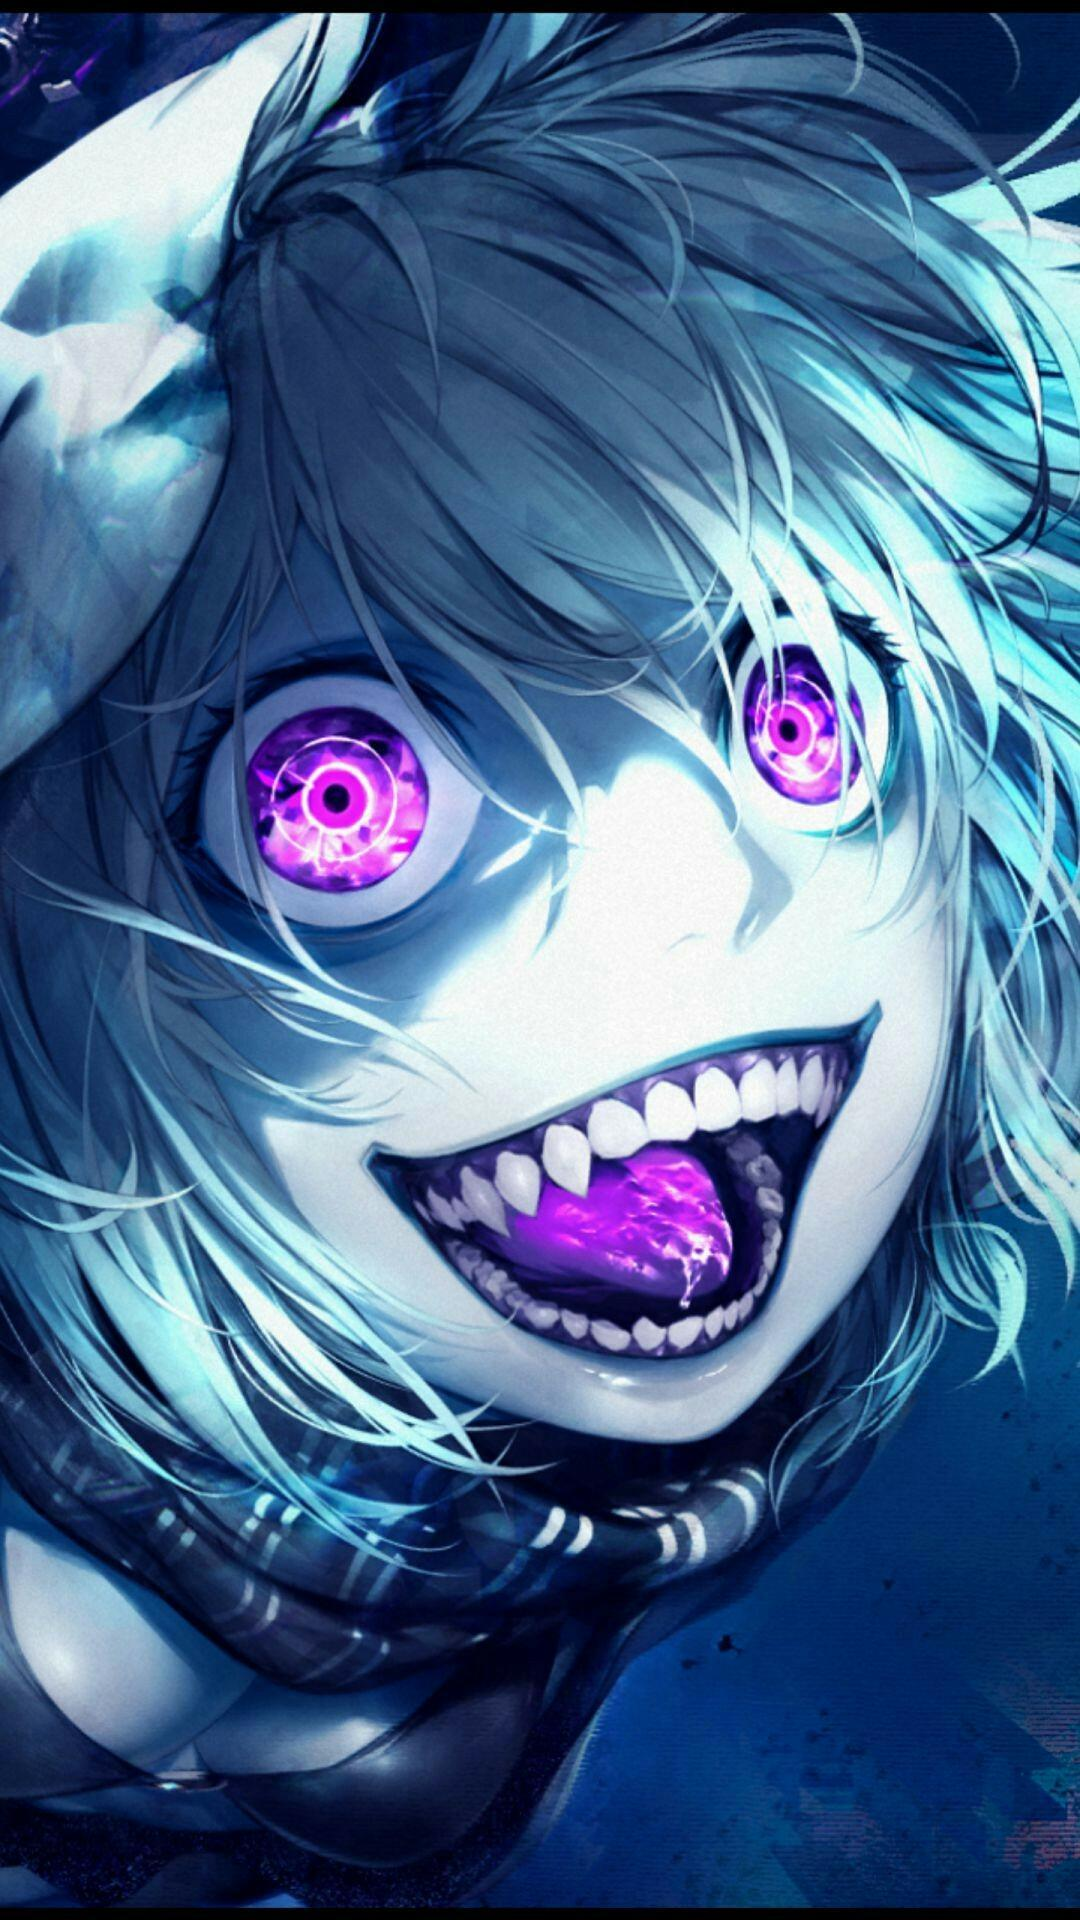 Amoled Anime Wallpapers Top Free Amoled Anime Backgrounds Wallpaperaccess